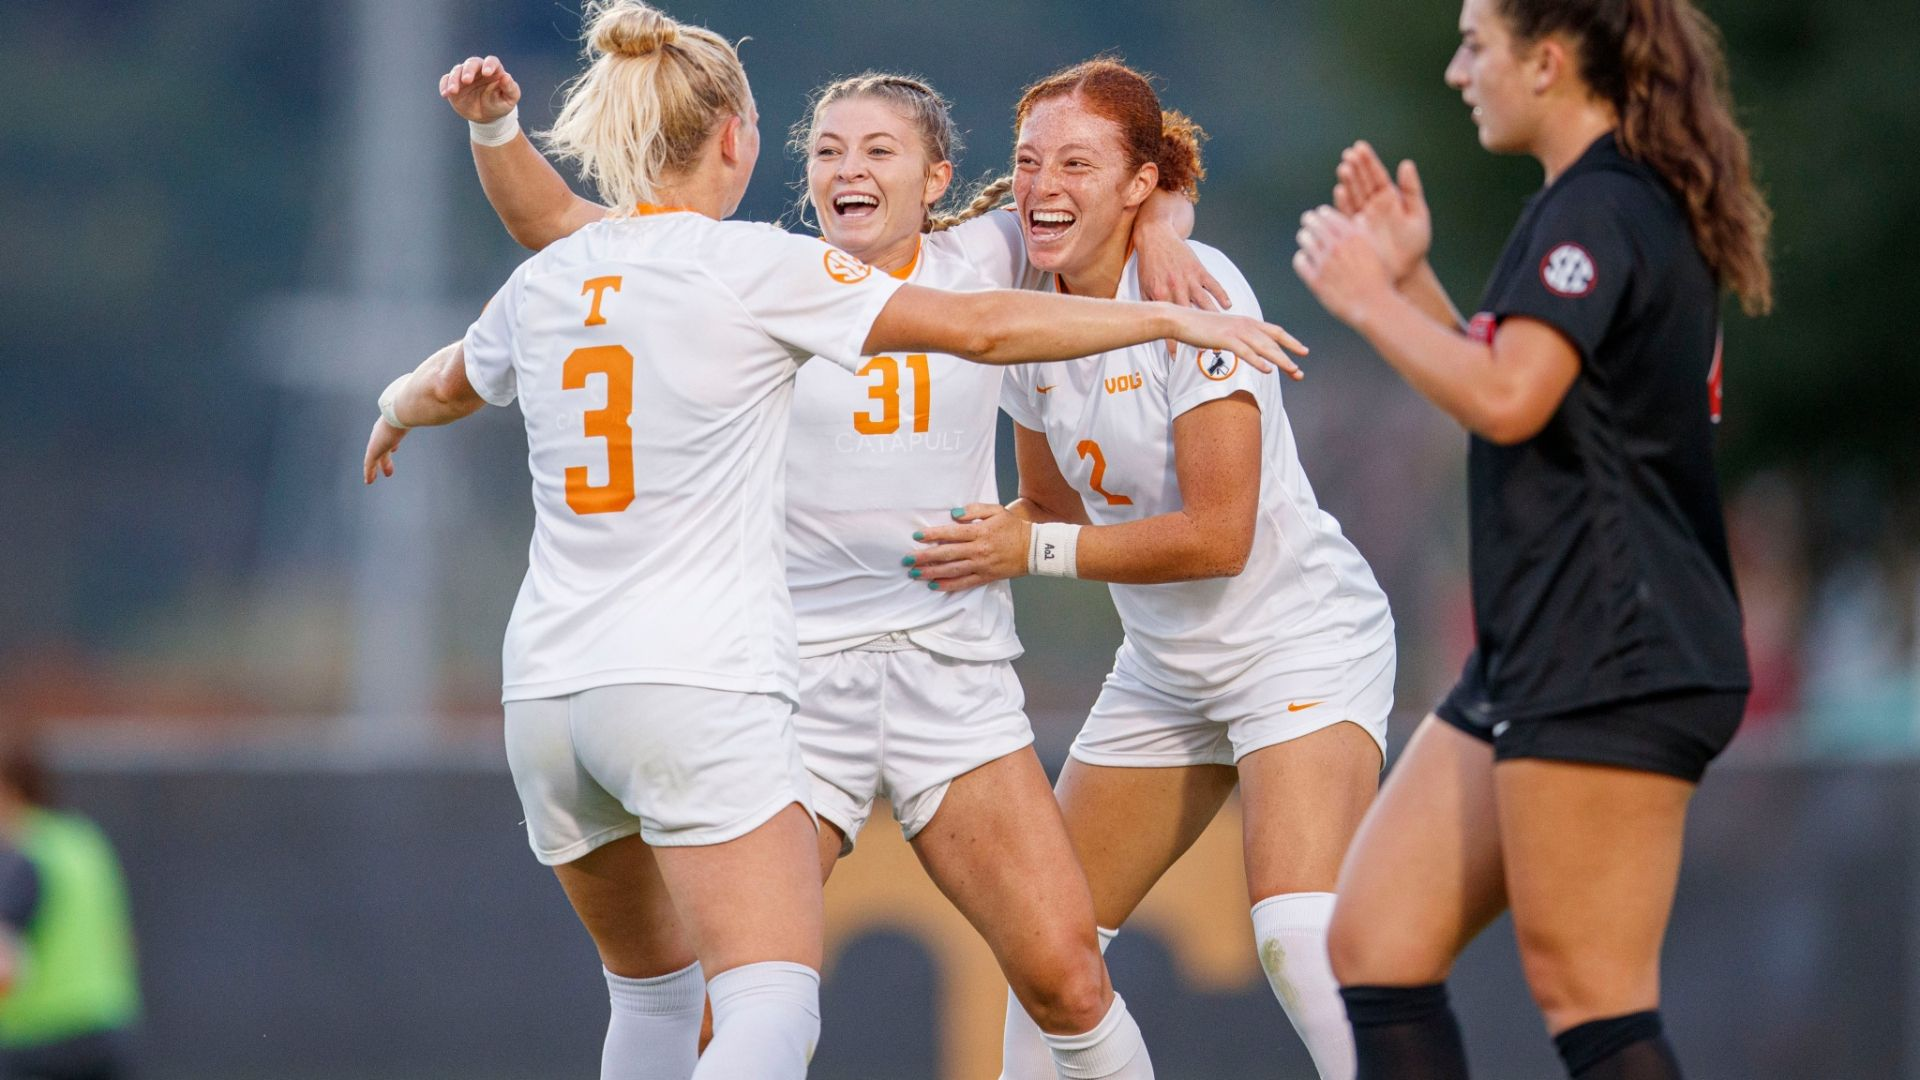 Strong offensive front leads Lady Vols to victory